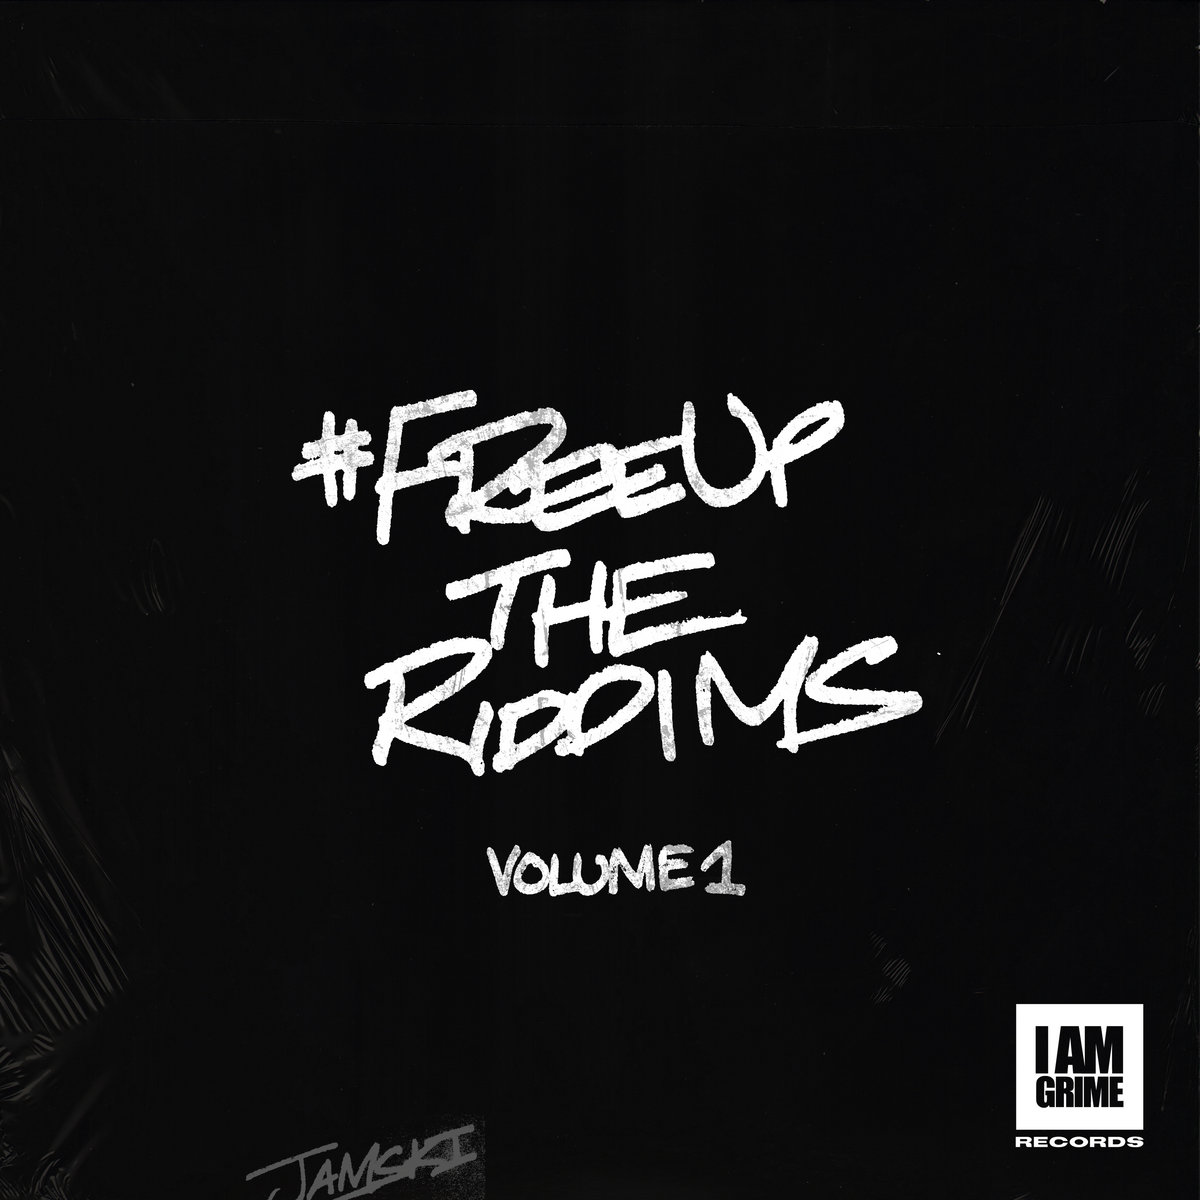 Free Up The Riddims Volume 1 | Jammz